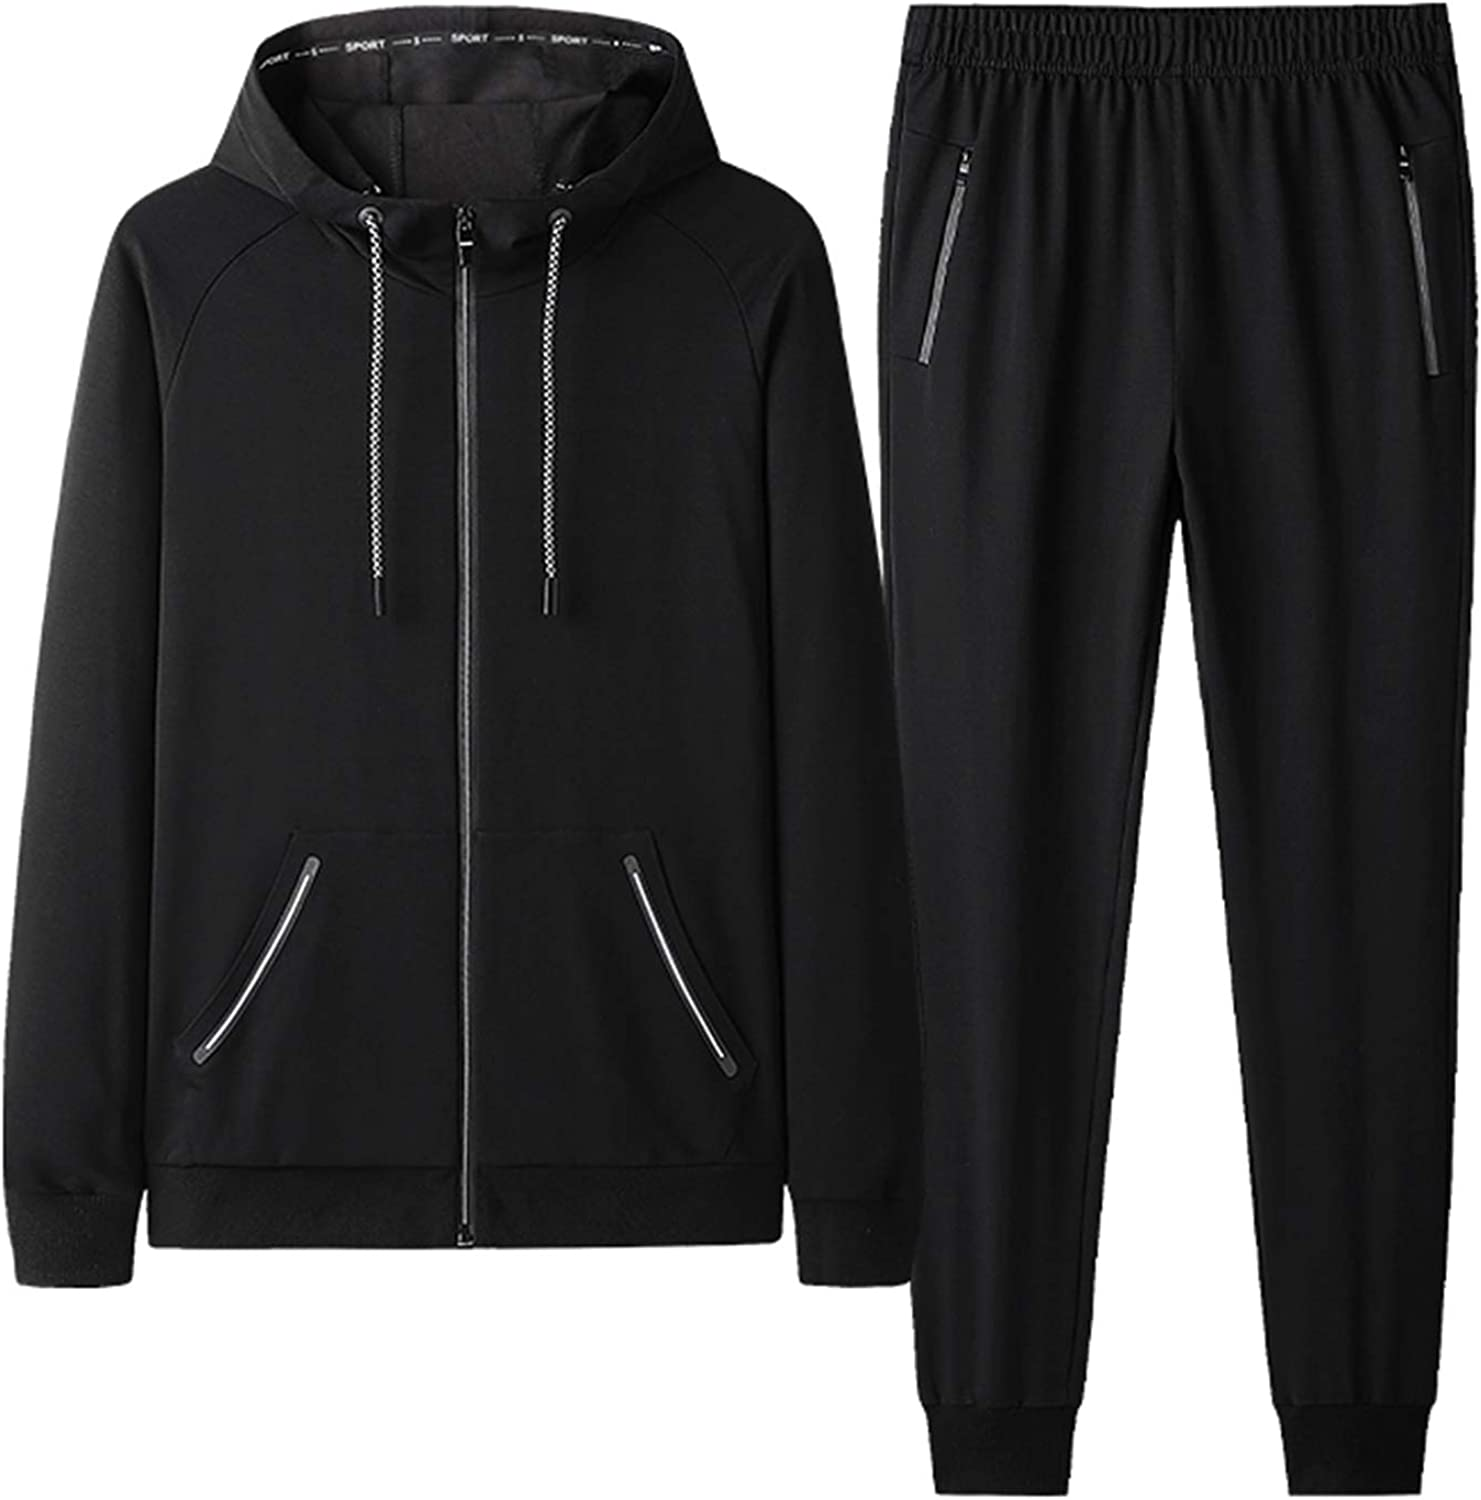 DOSLAVIDA Men's Athletic Tracksuit Casual 2 Piece Running Jogging Track Suit Sets Long Sleeve Full Zip Hooded Sweatsuits